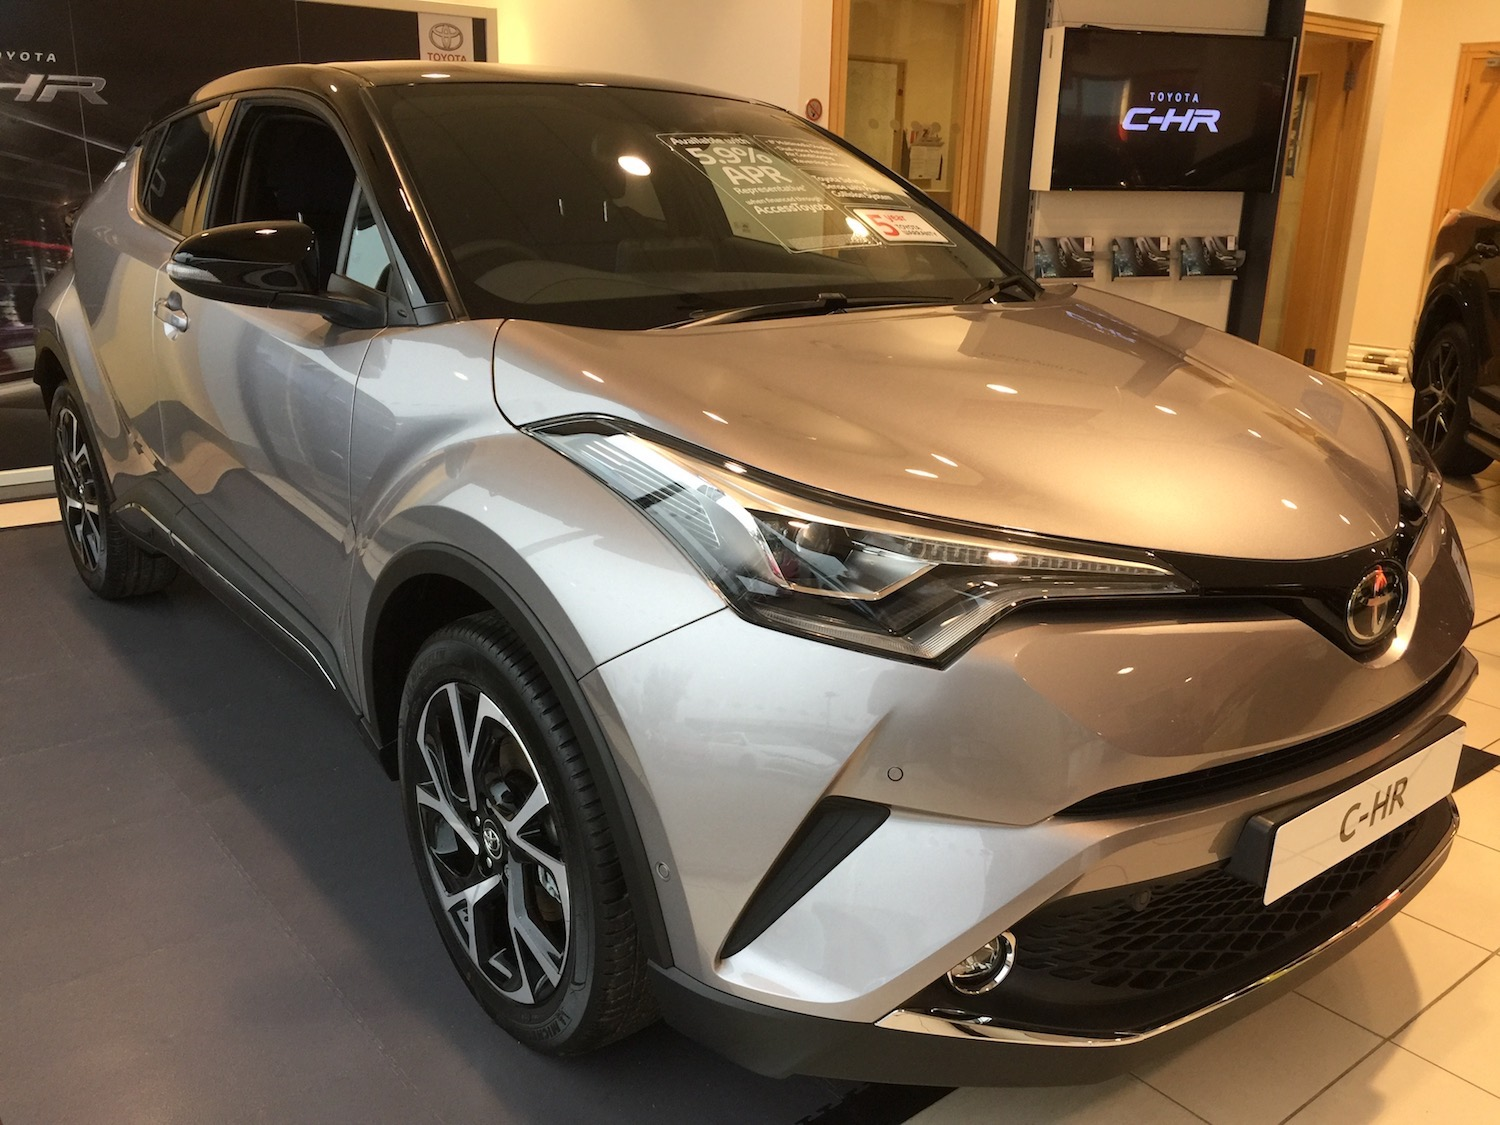 slm-toyota-all-new-c-hr